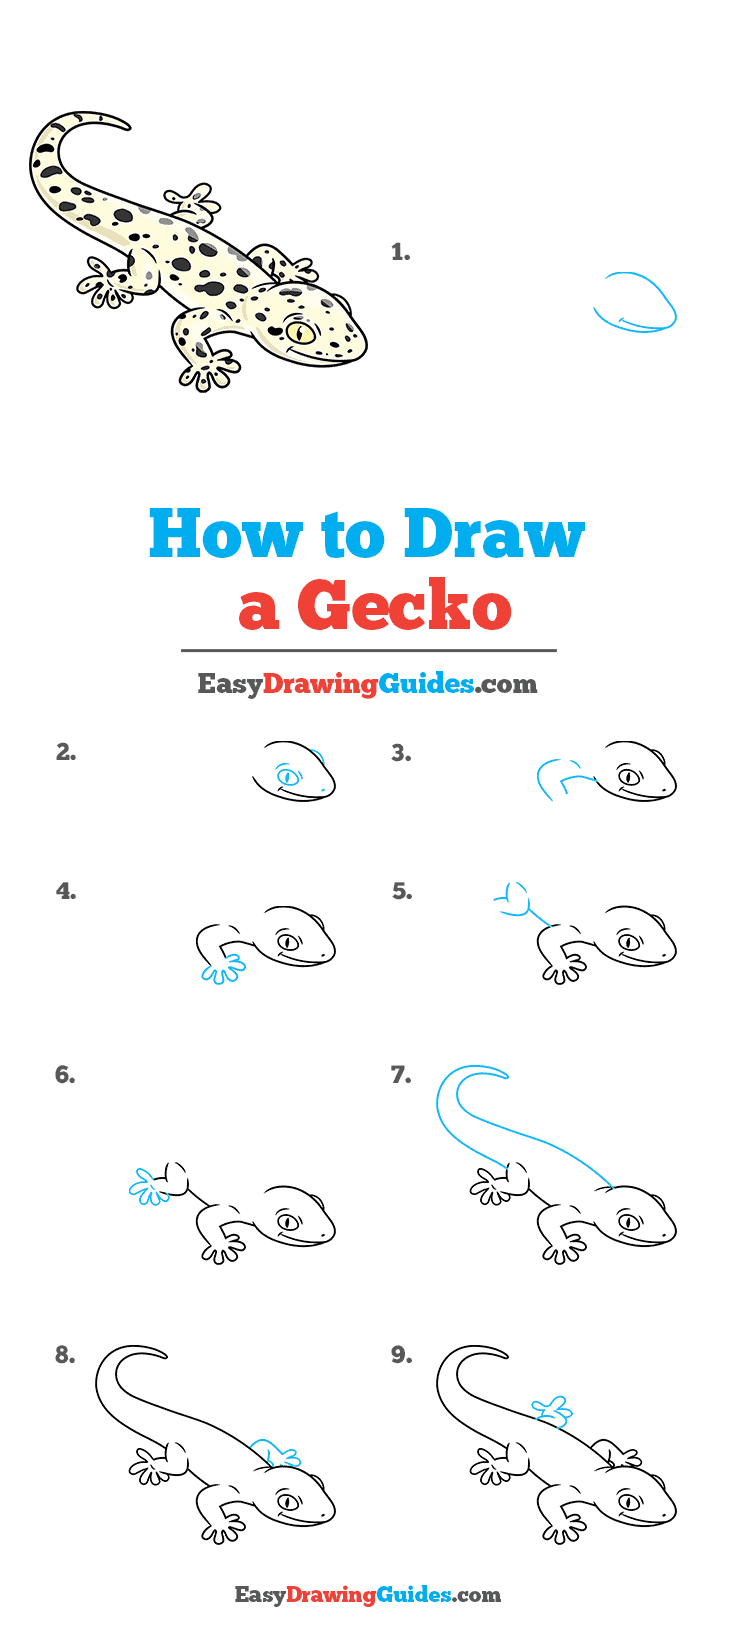 How to Draw a Gecko Step by Step Tutorial Image